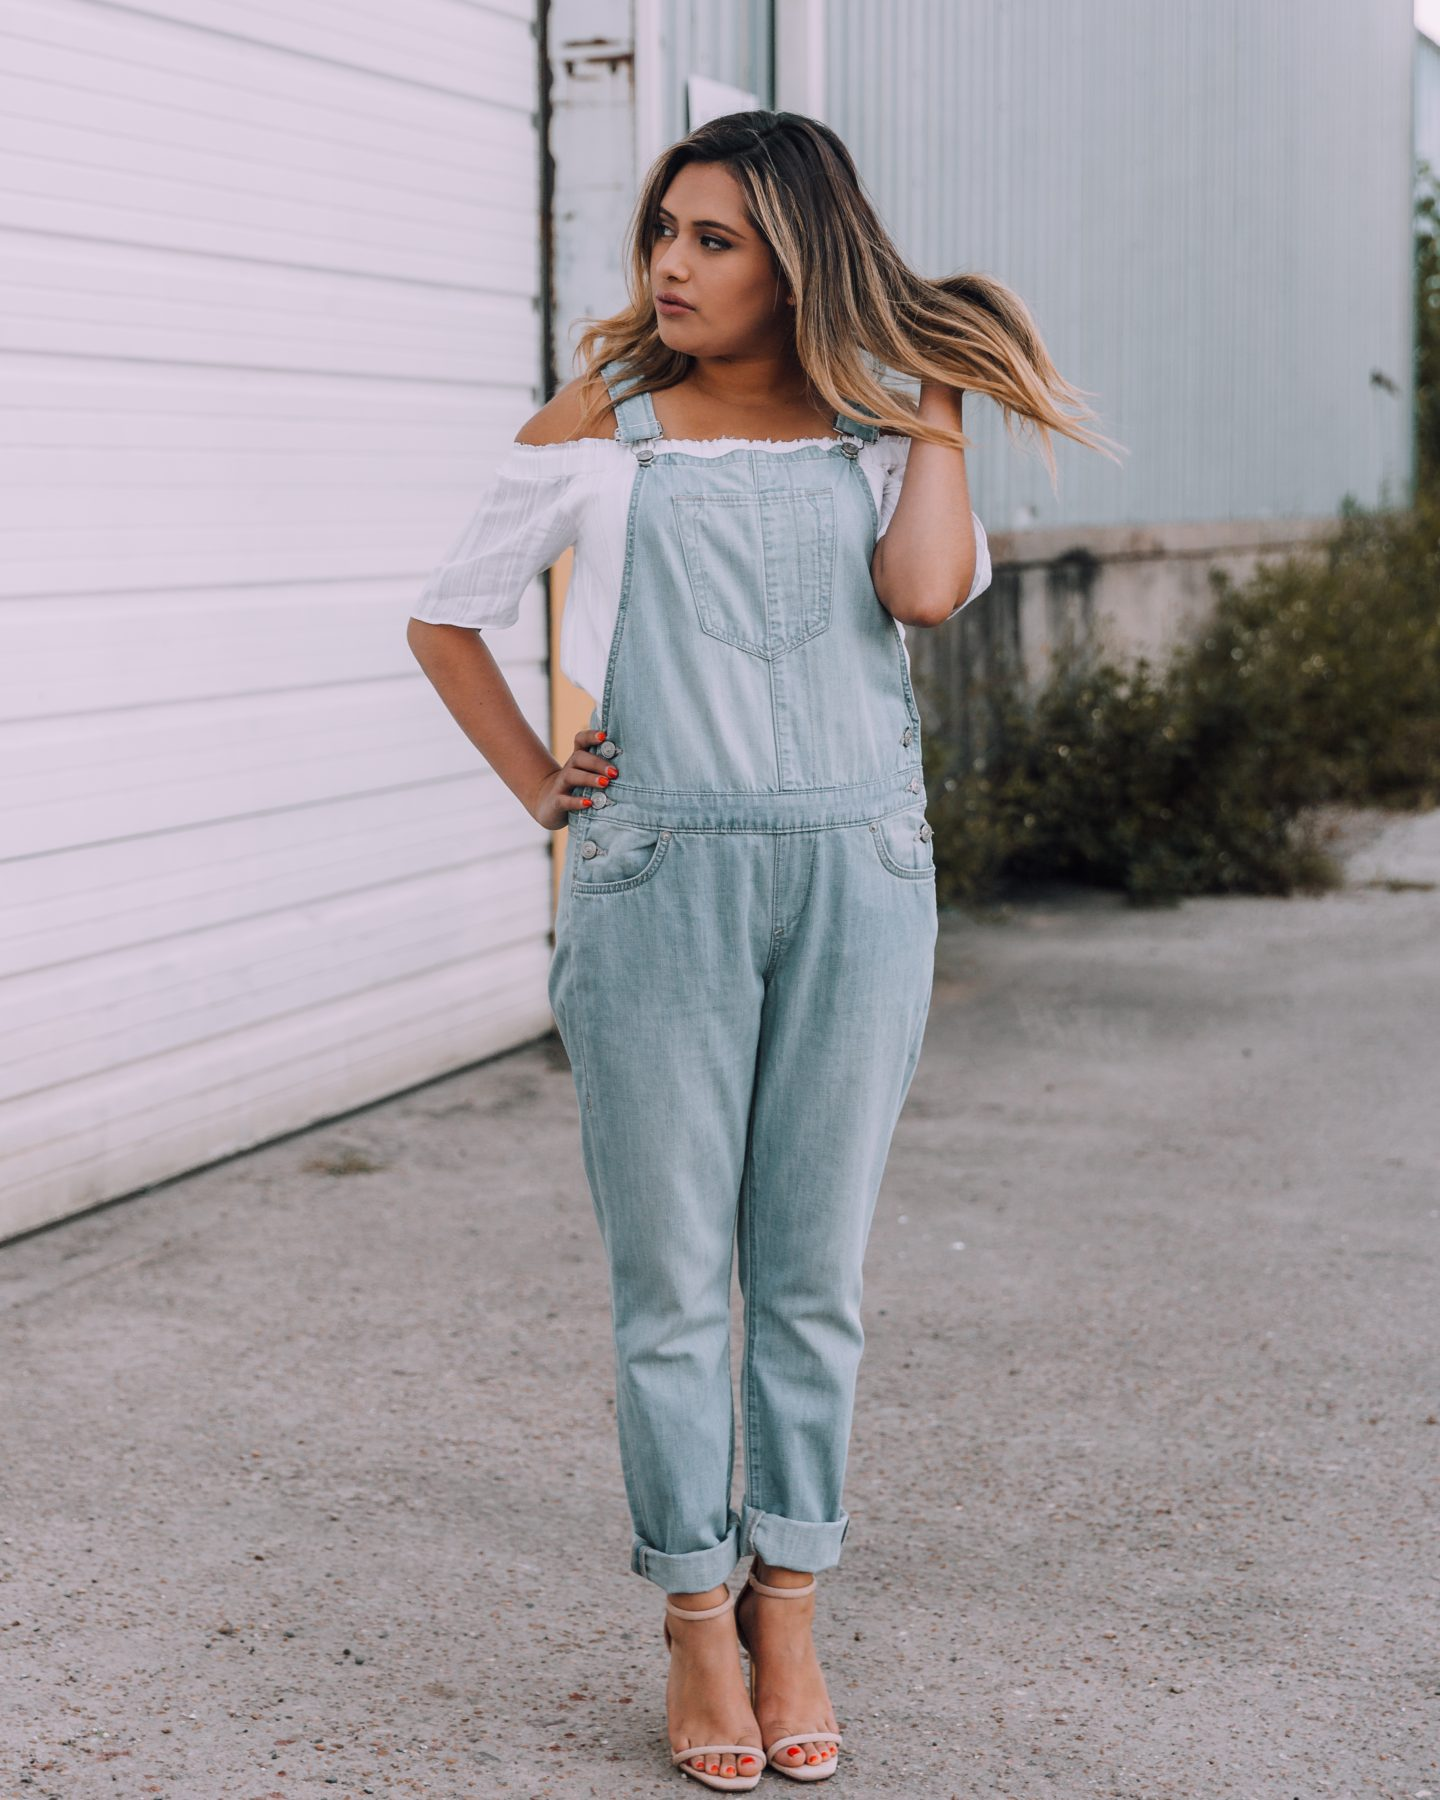 How to Find the Right Overalls